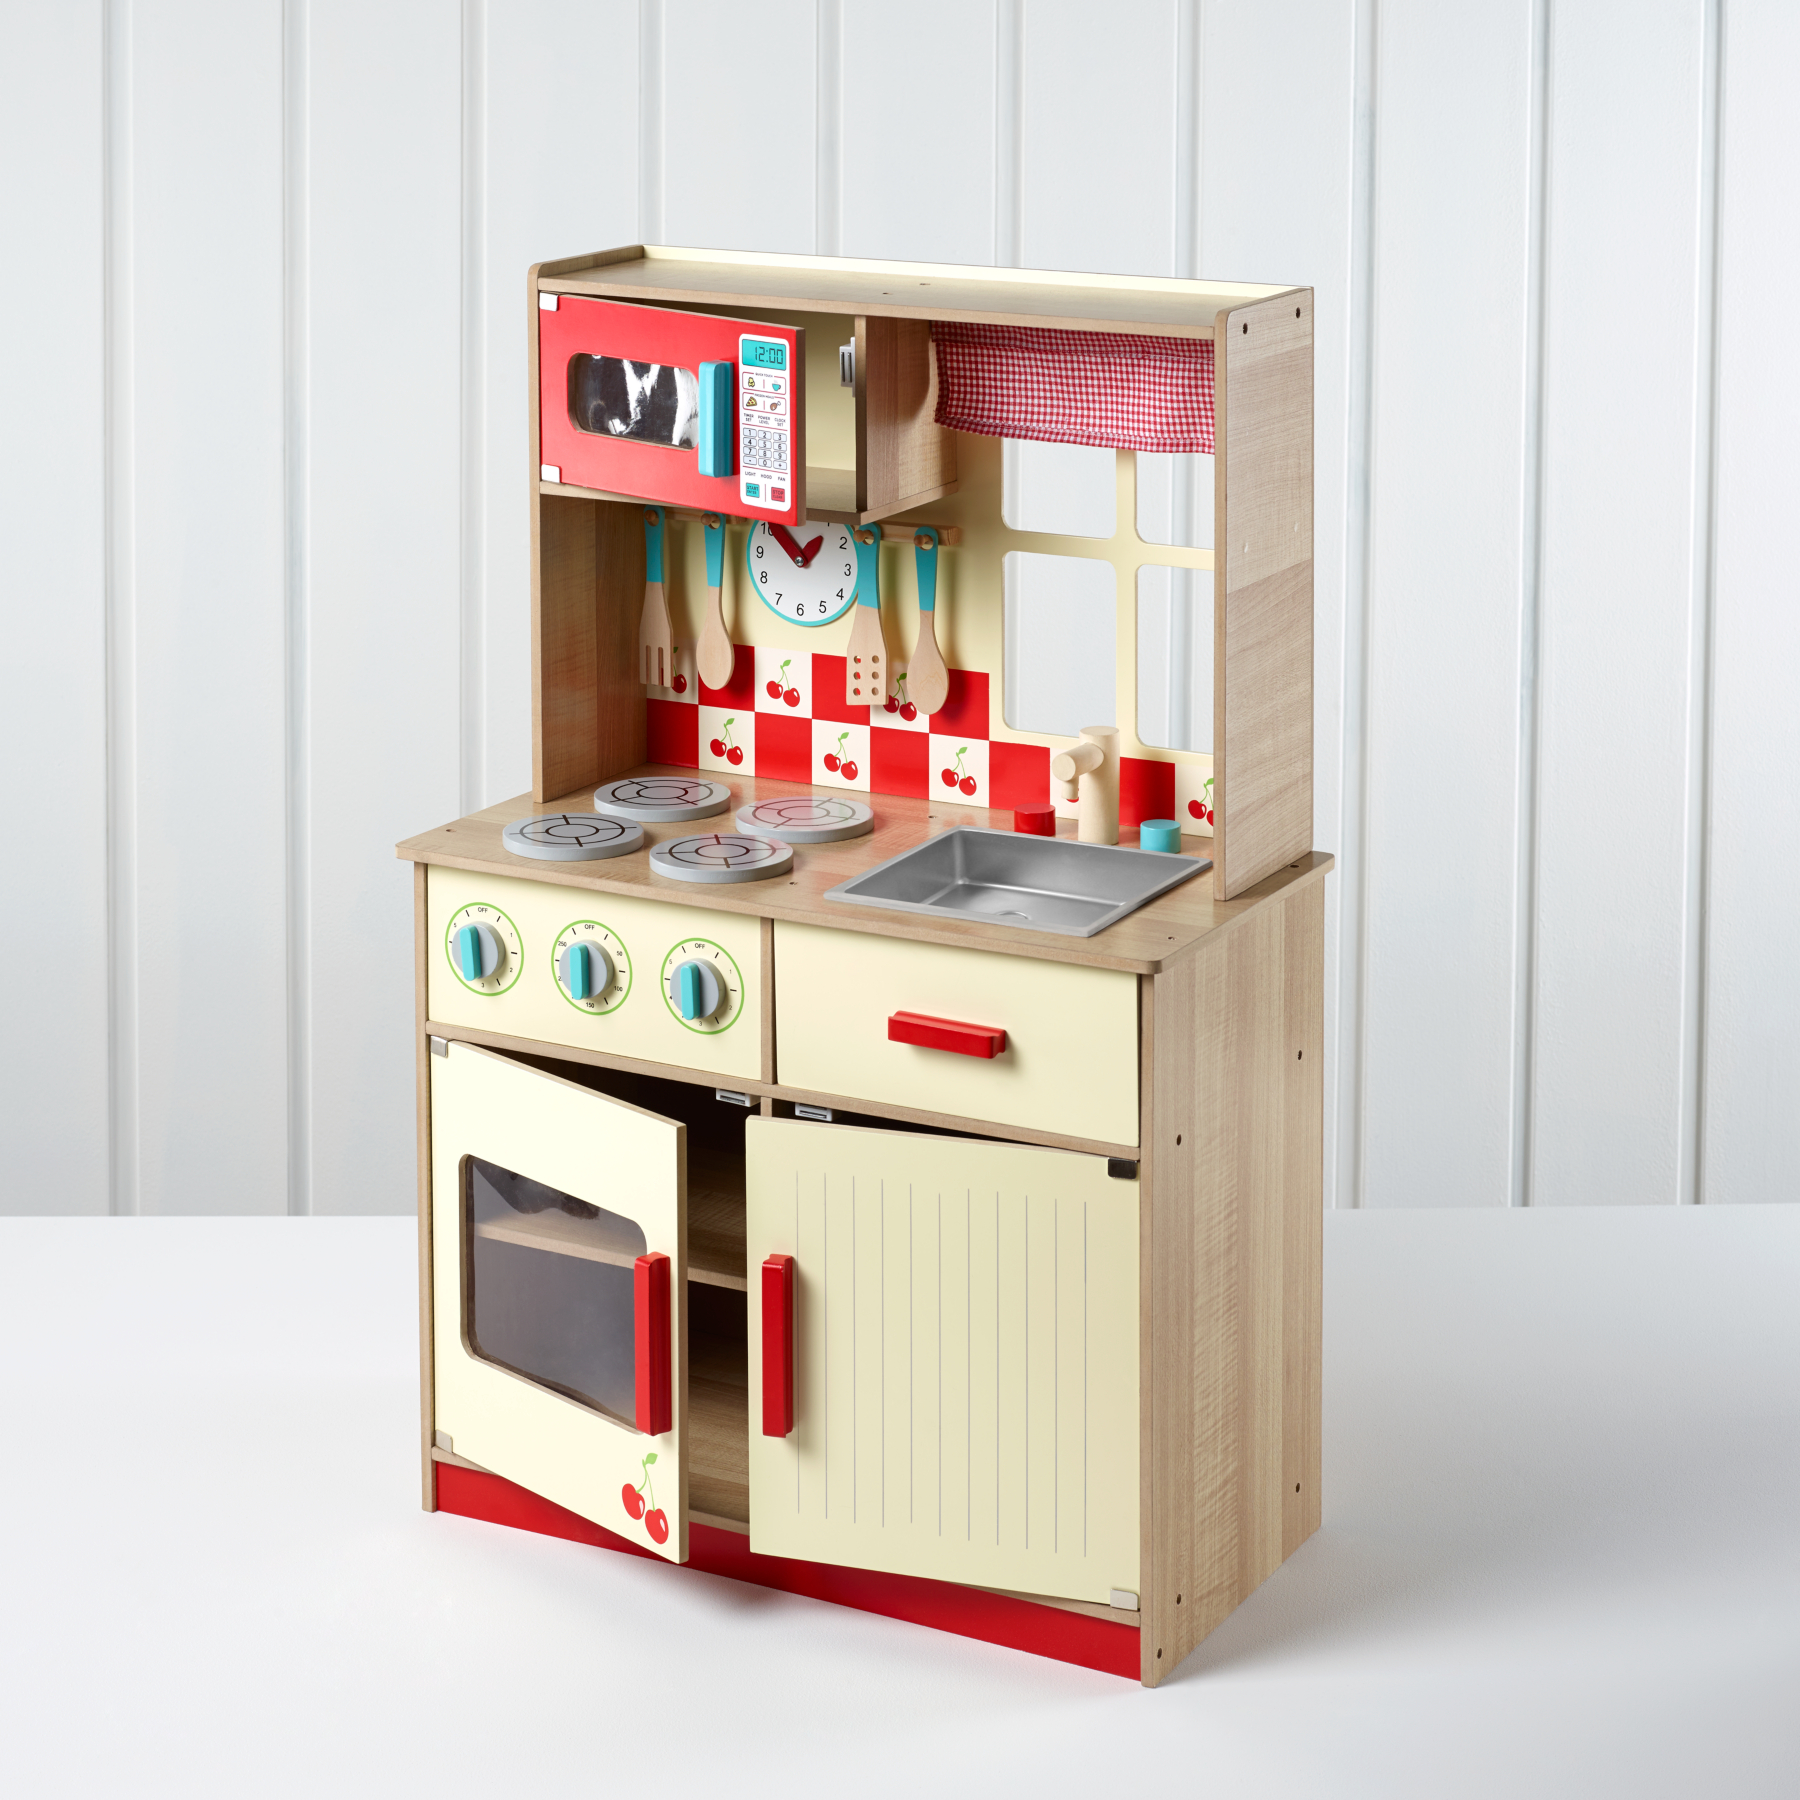 George Home Deluxe Wooden Kitchen Kids George At Asda